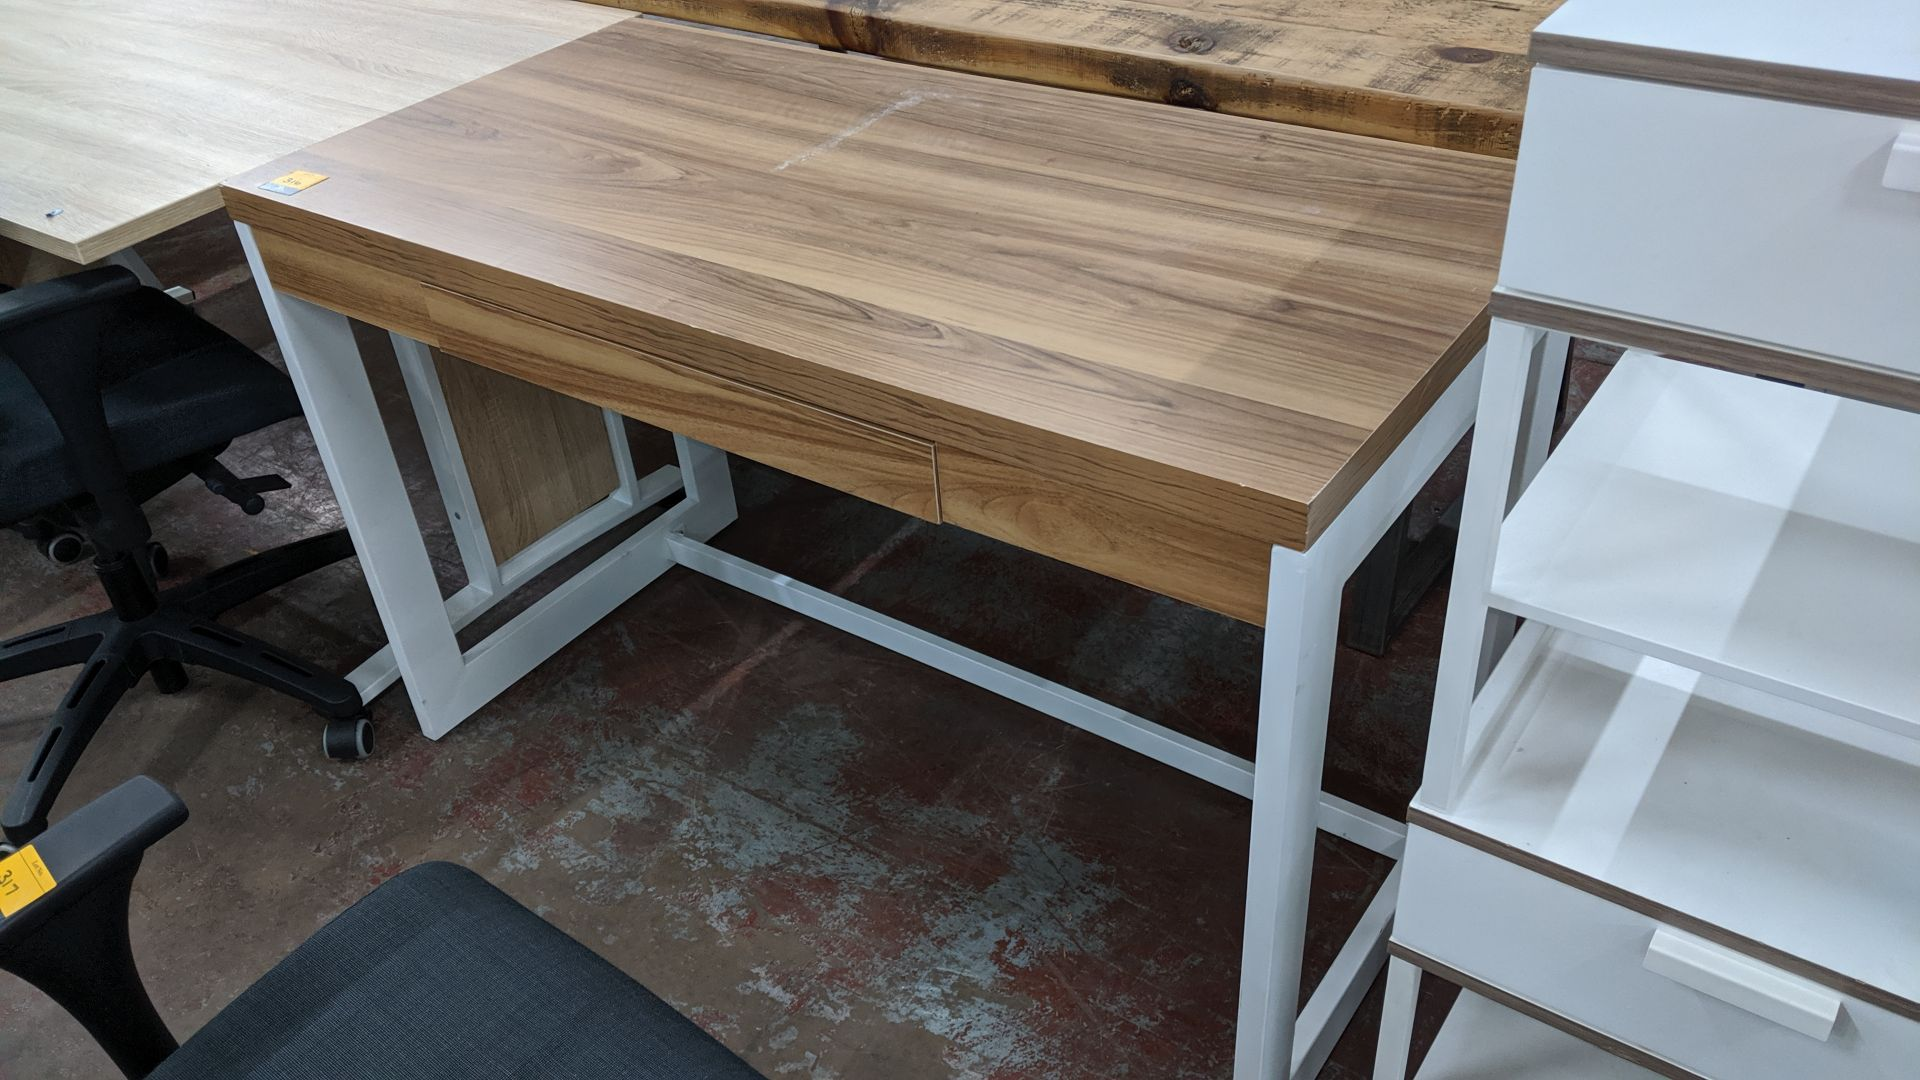 Lot 316 - White & wooden finish desk. This is one of a large number of lots used/owned by One To One (North